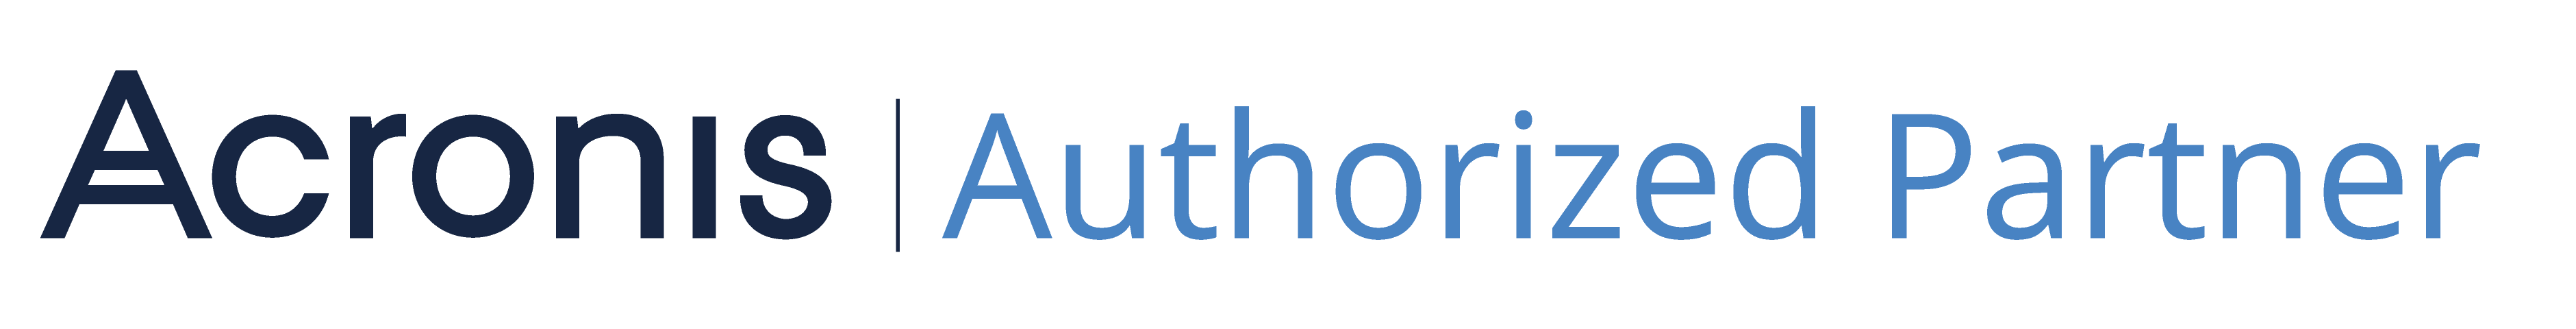 authorized_partner_logo